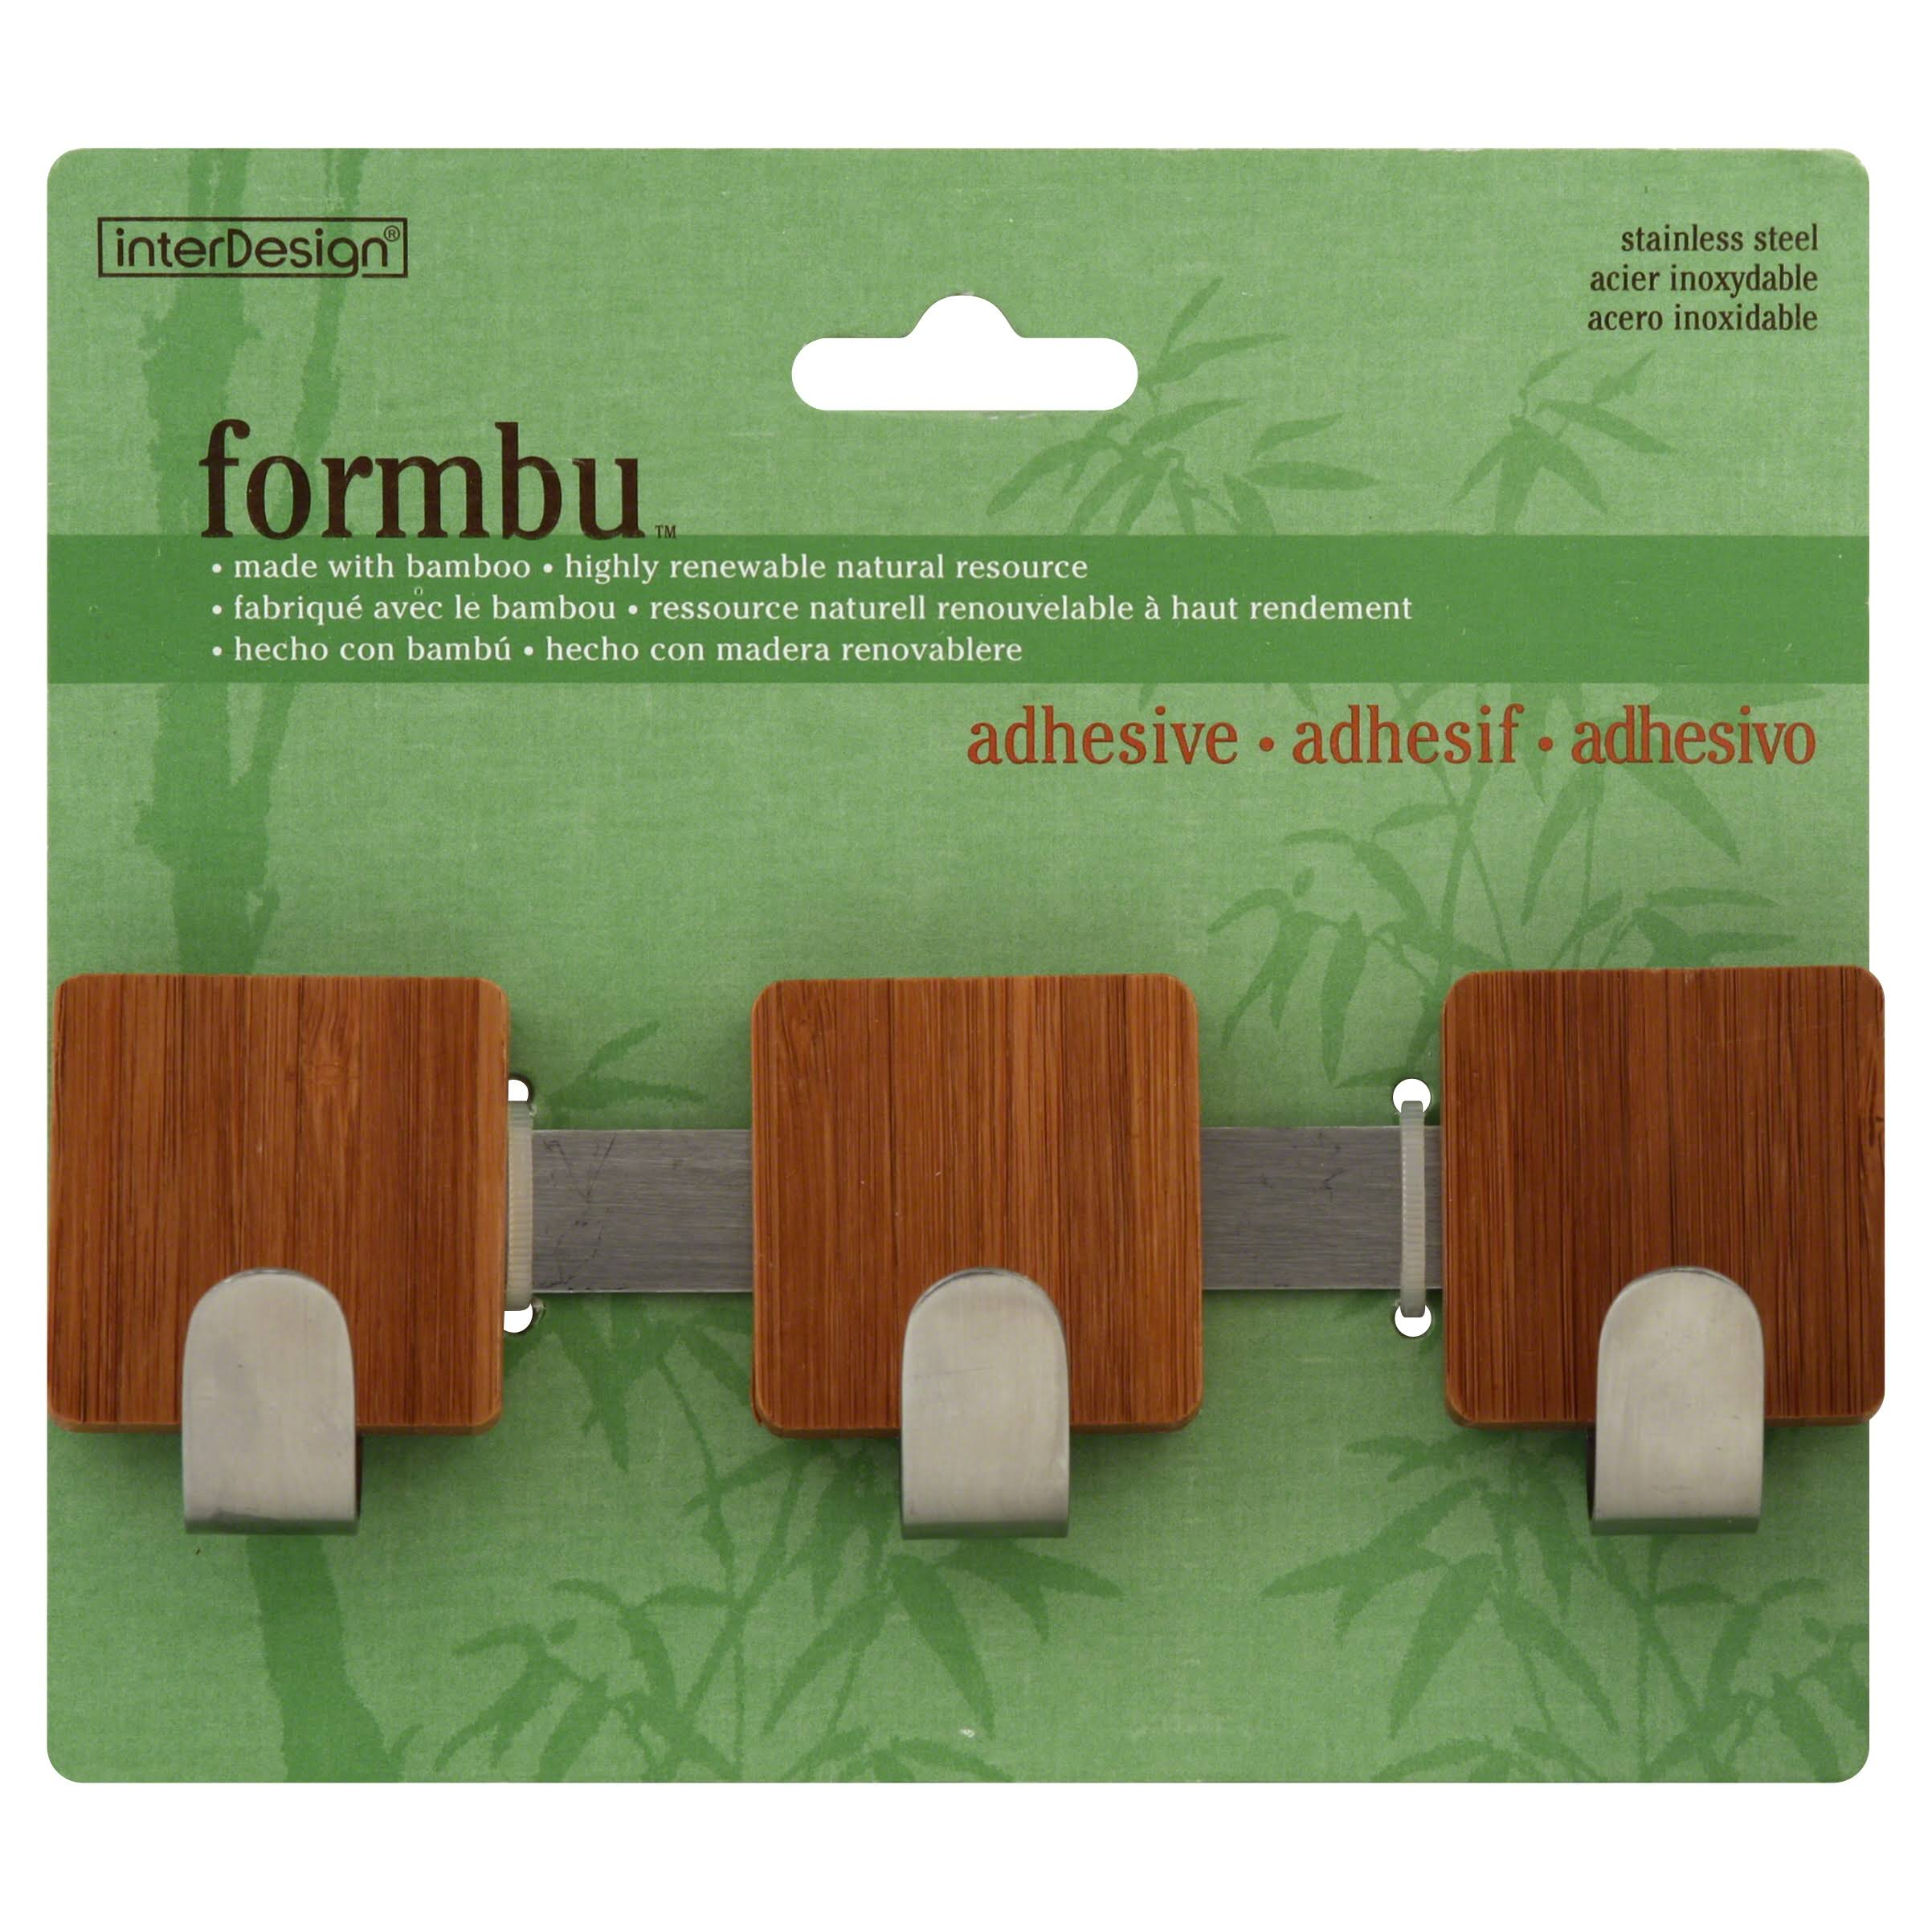 InterDesign Formbu Self Adhesive Multi Hook - Bamboo/Brushed Stainless Steel